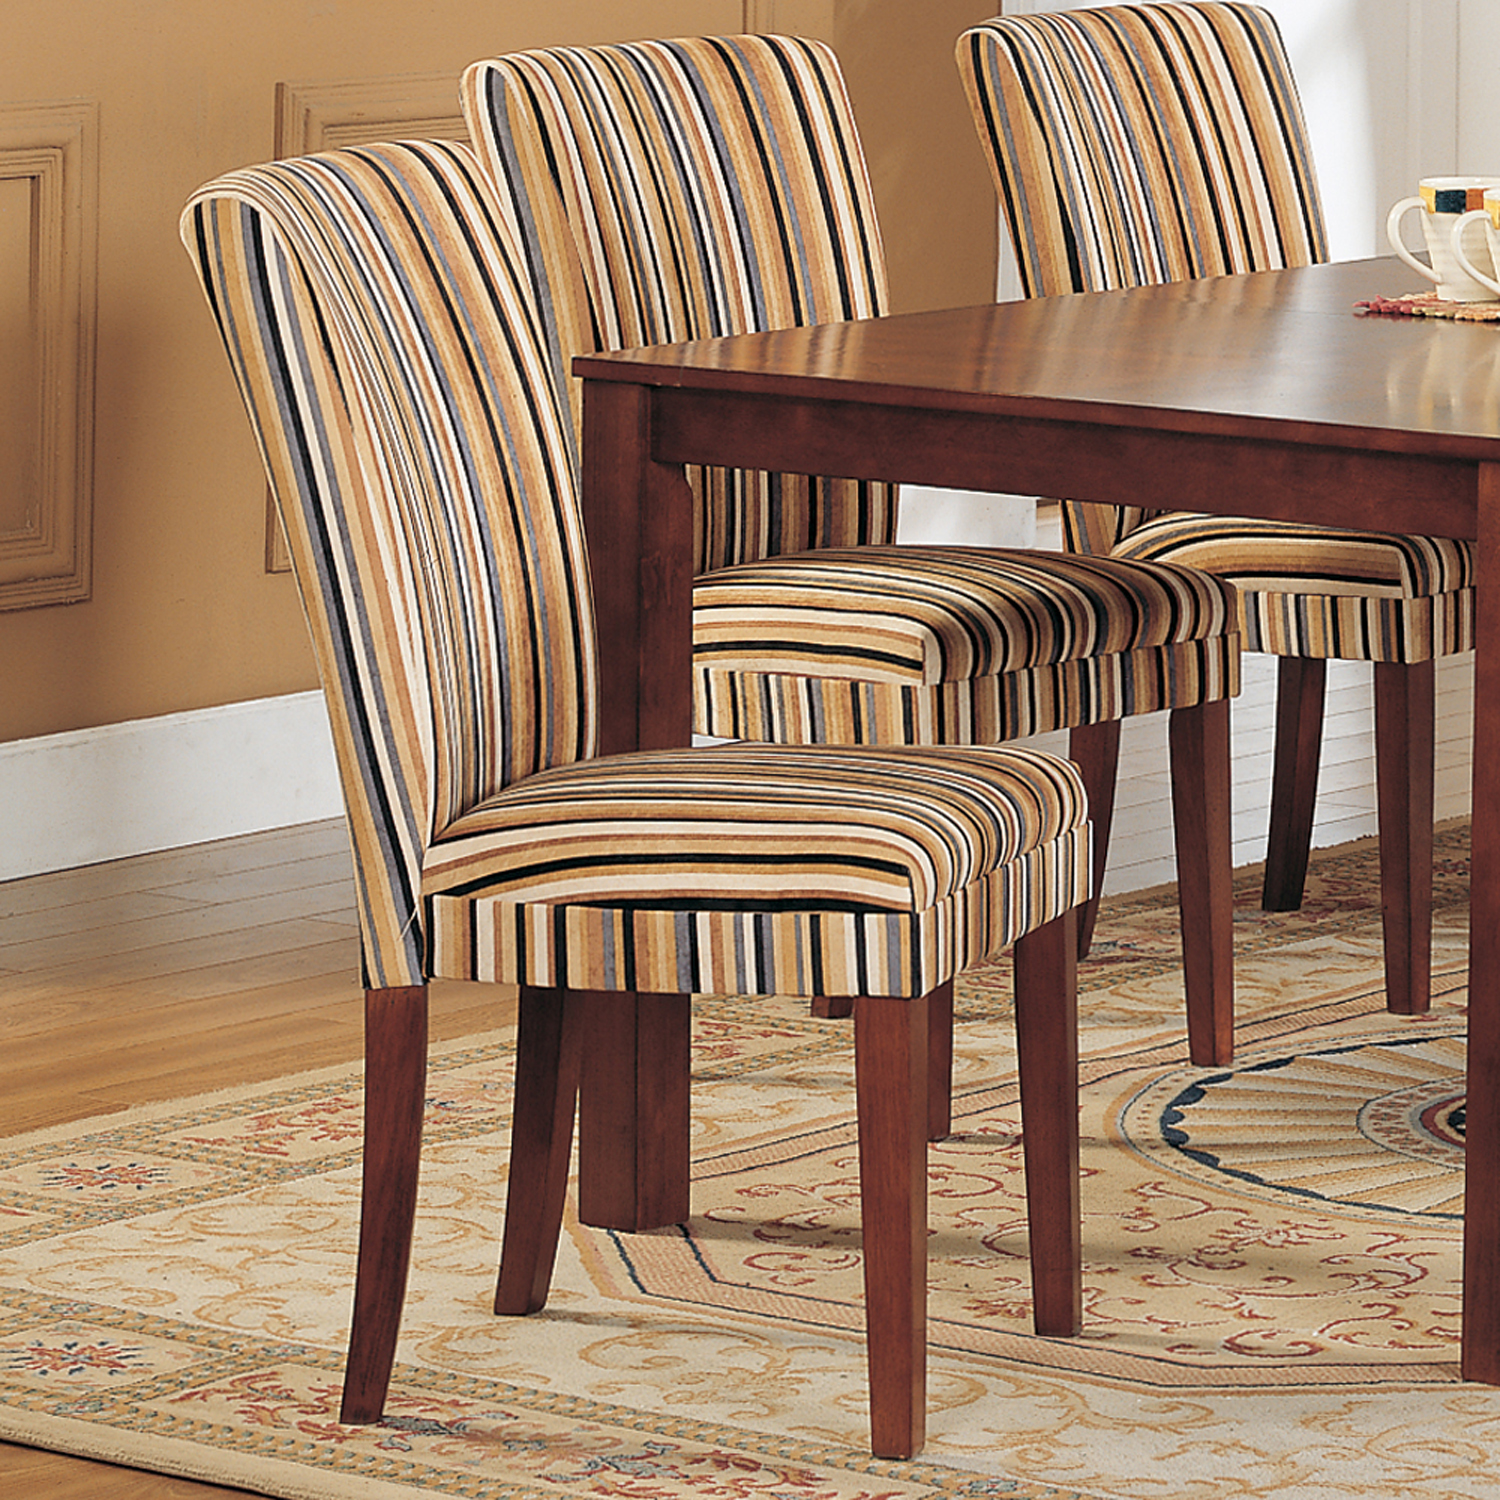 striped dining chair steel easy oxford creek upholstered set of 2 multi home furniture kitchen chairs